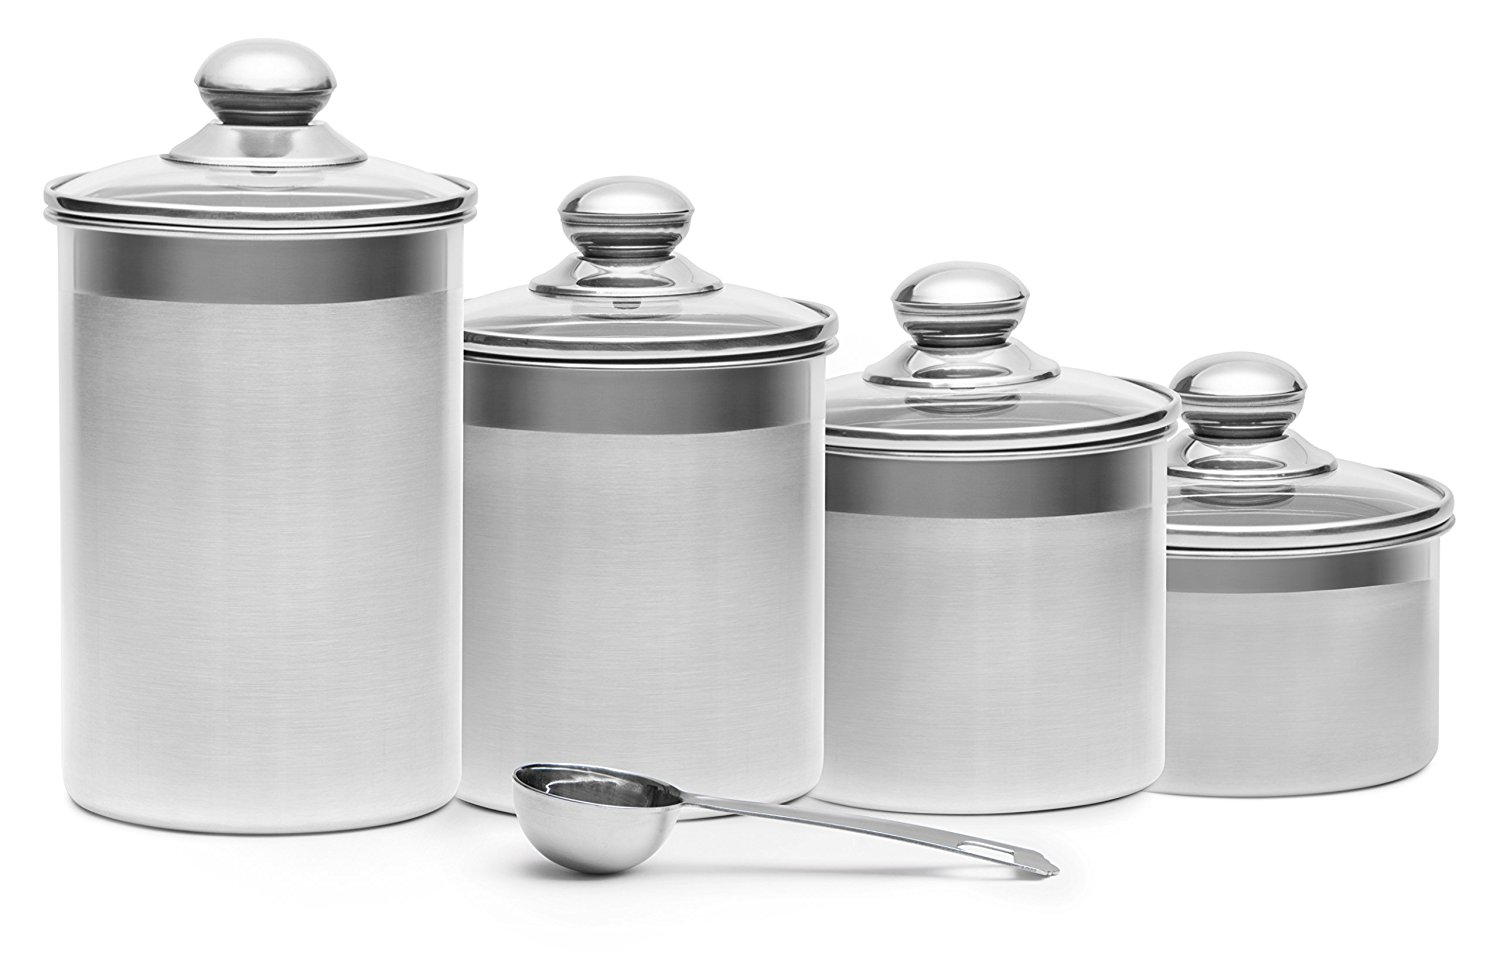 Kitchen Canister Sets as Good Food Storage | Cool Ideas for Home